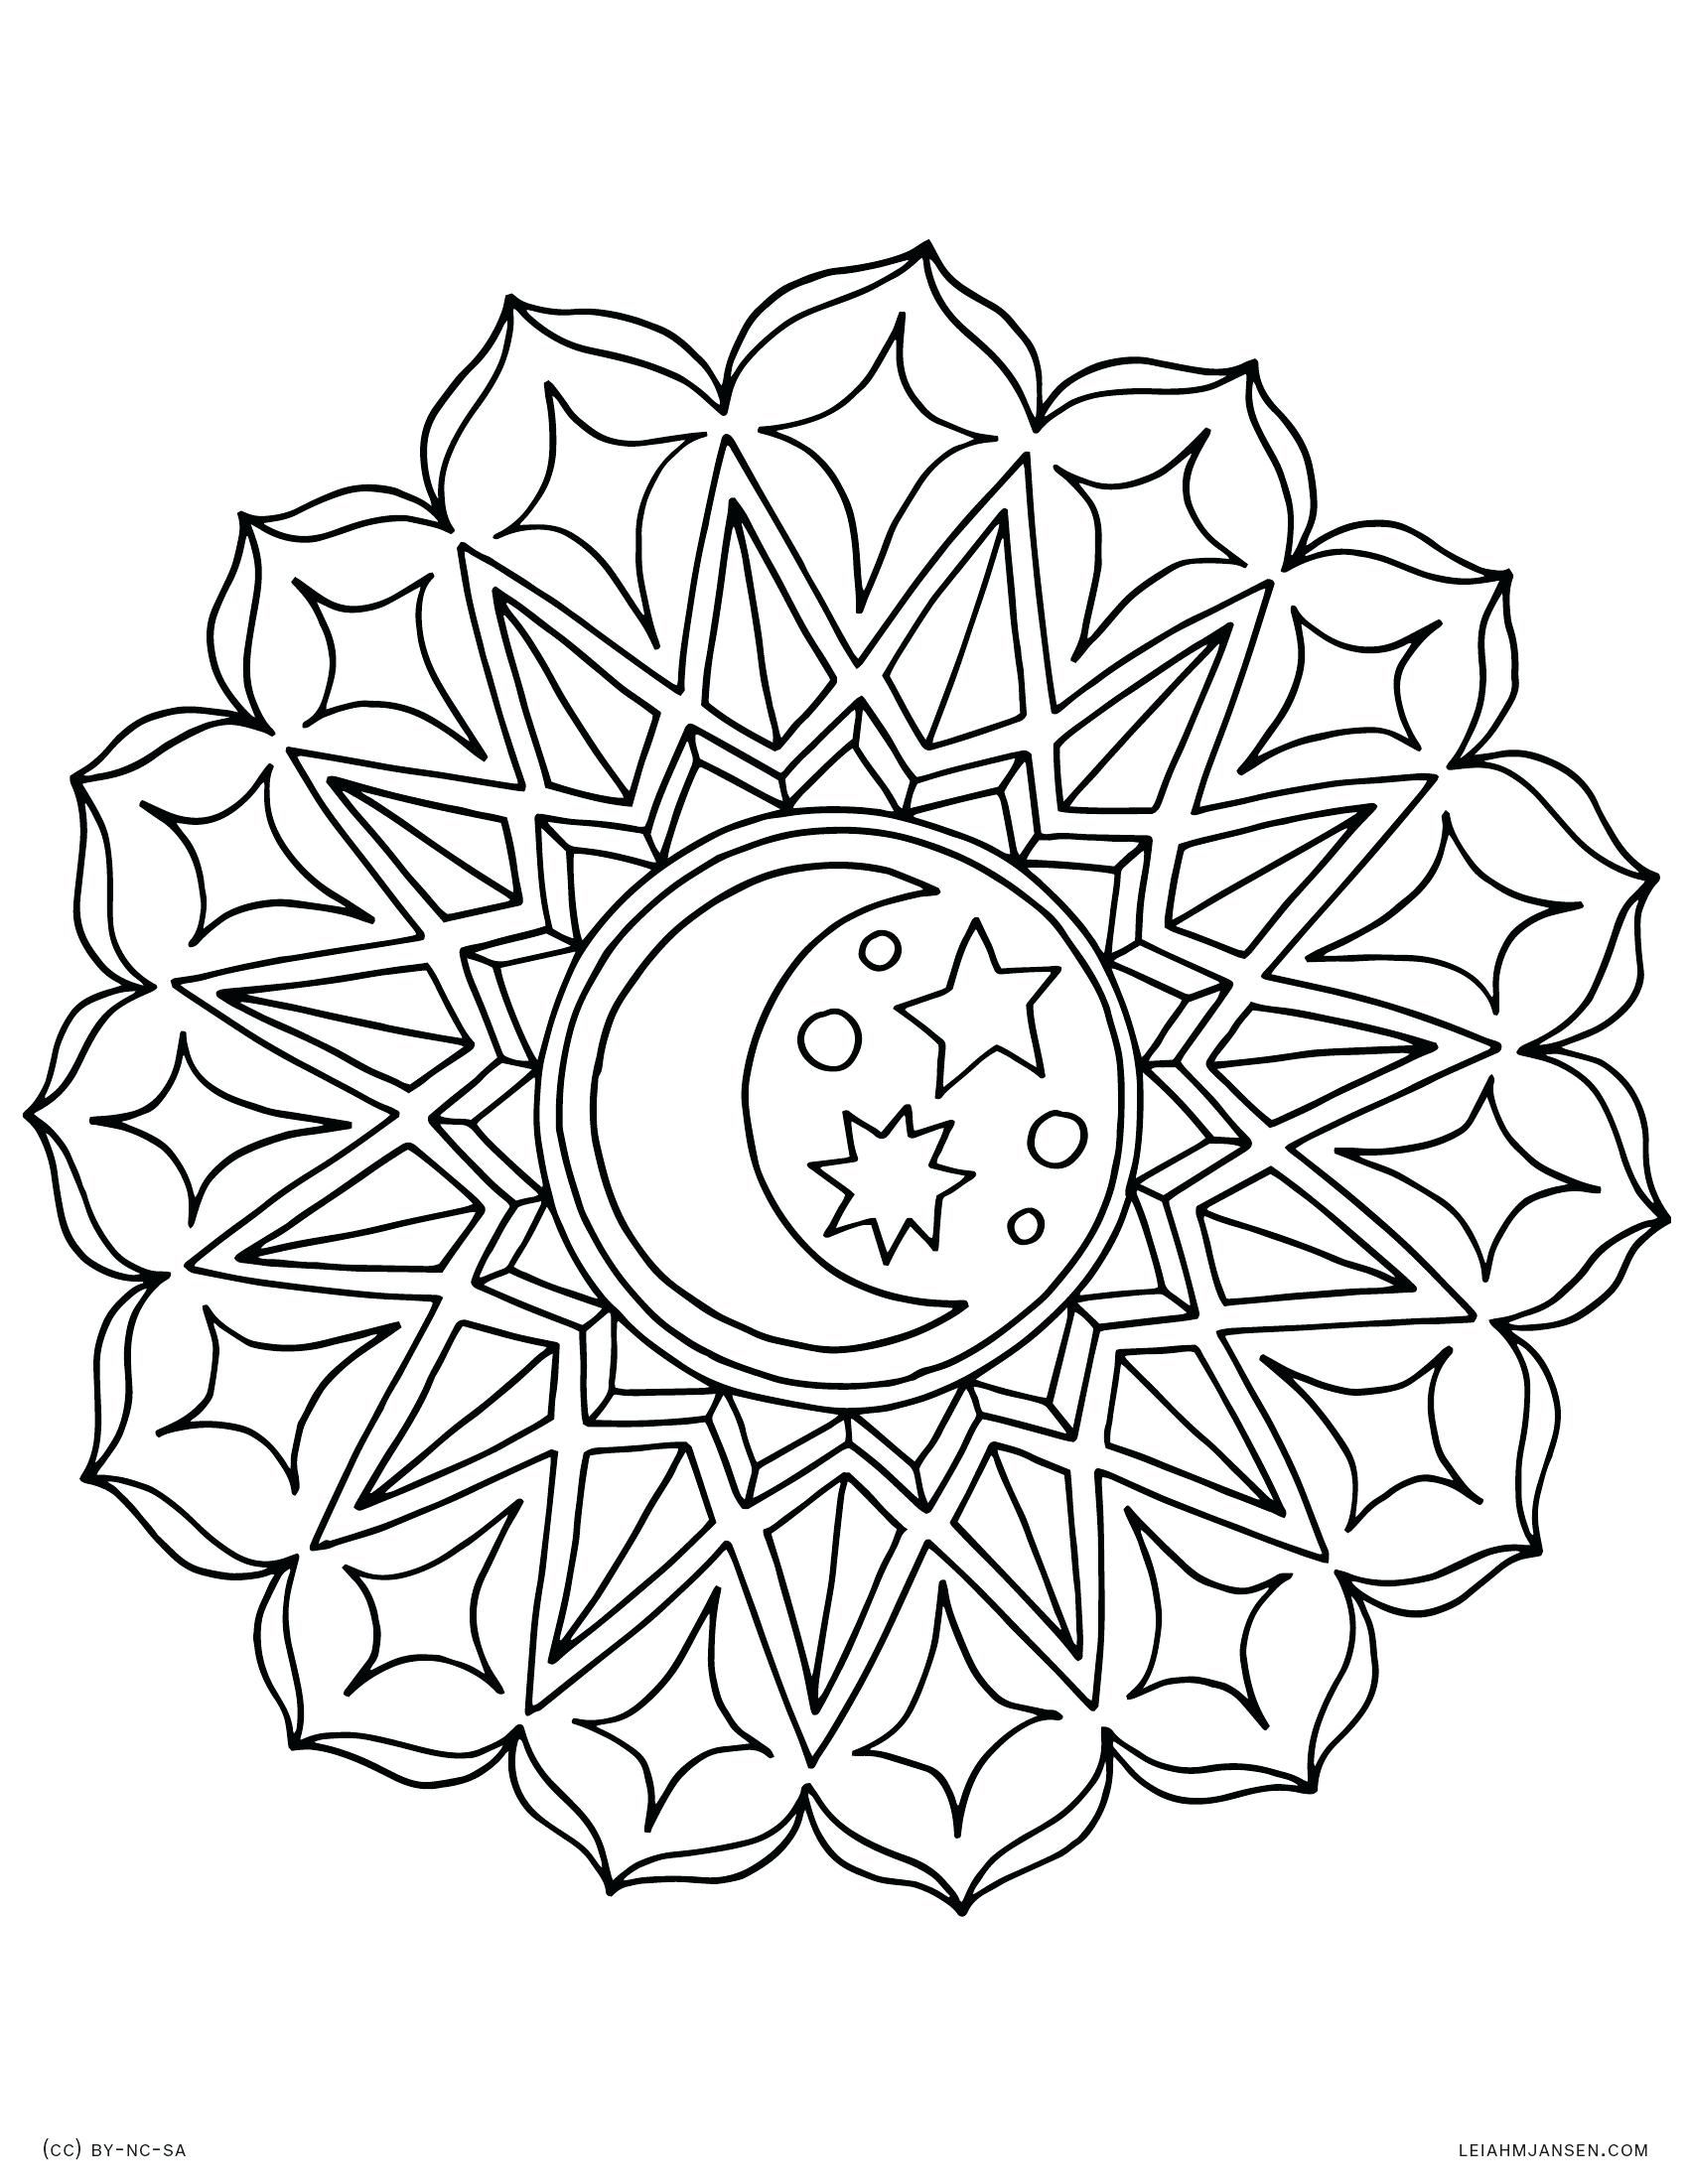 Celestial Moon Coloring Pages For Adults Colouring Mermaid Mandala Coloring Pages Mandala Coloring Books Coloring Pages